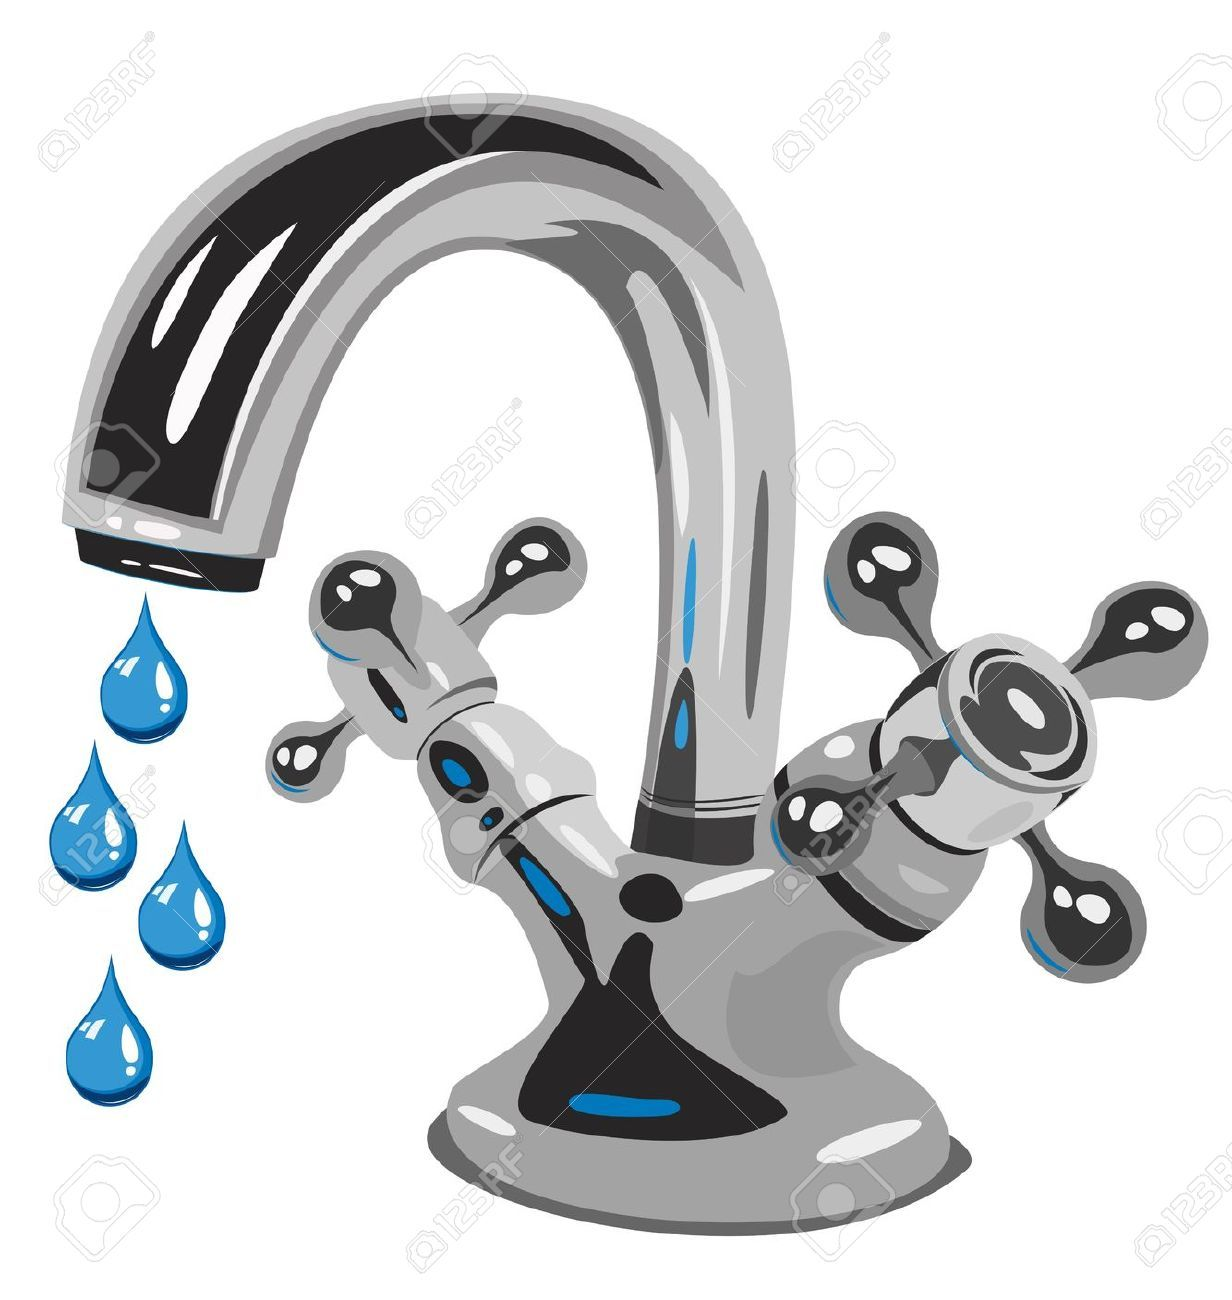 Dripping faucet clipart 1 » Clipart Portal.